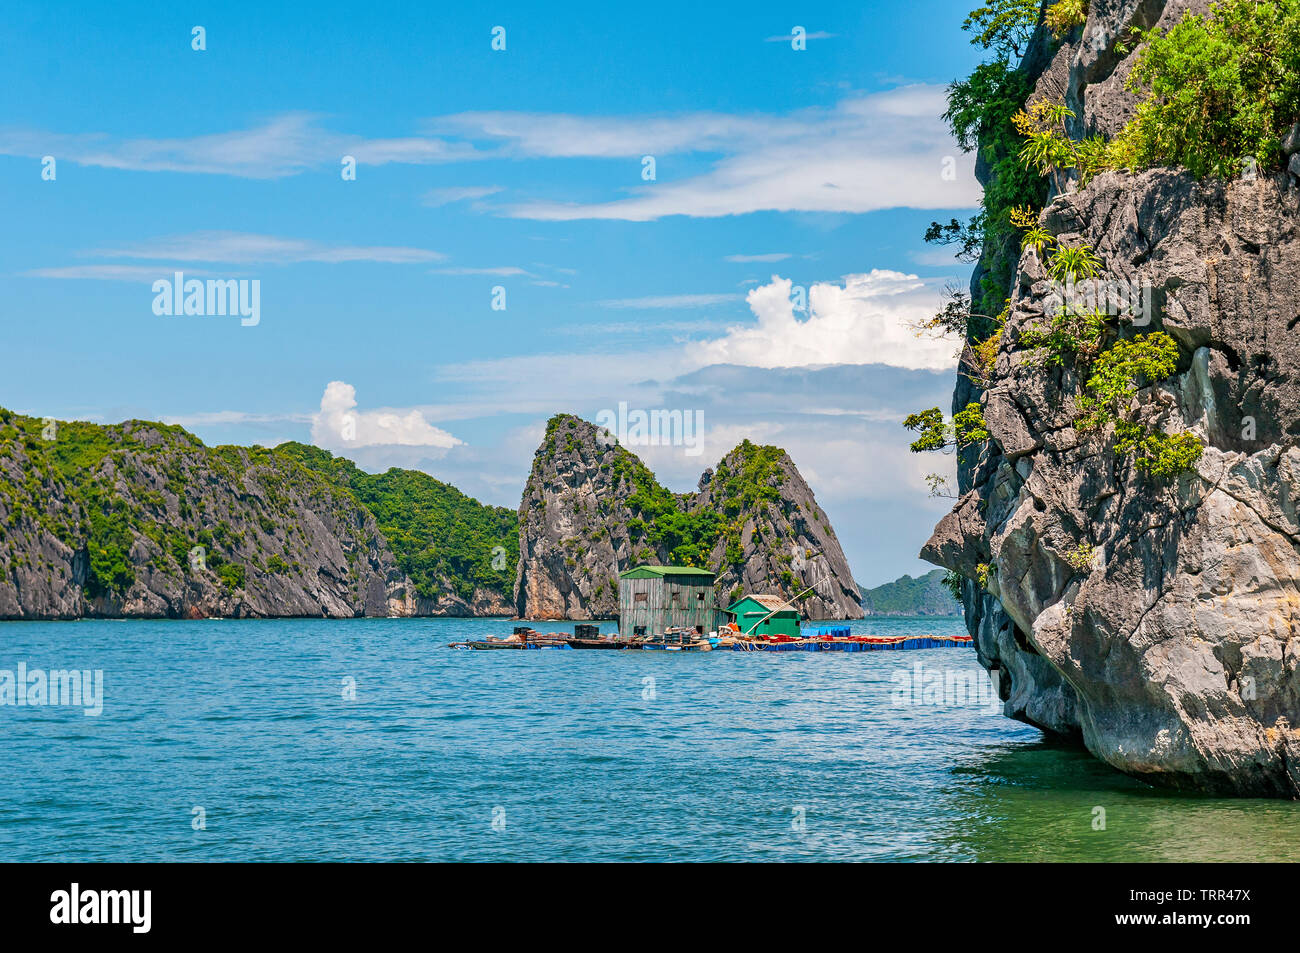 A summer day between the karst mineral formations and emerald waters of the Tonkin Gulf in Halong Bay with a floating house, North Vietnam, Asia. - Stock Image